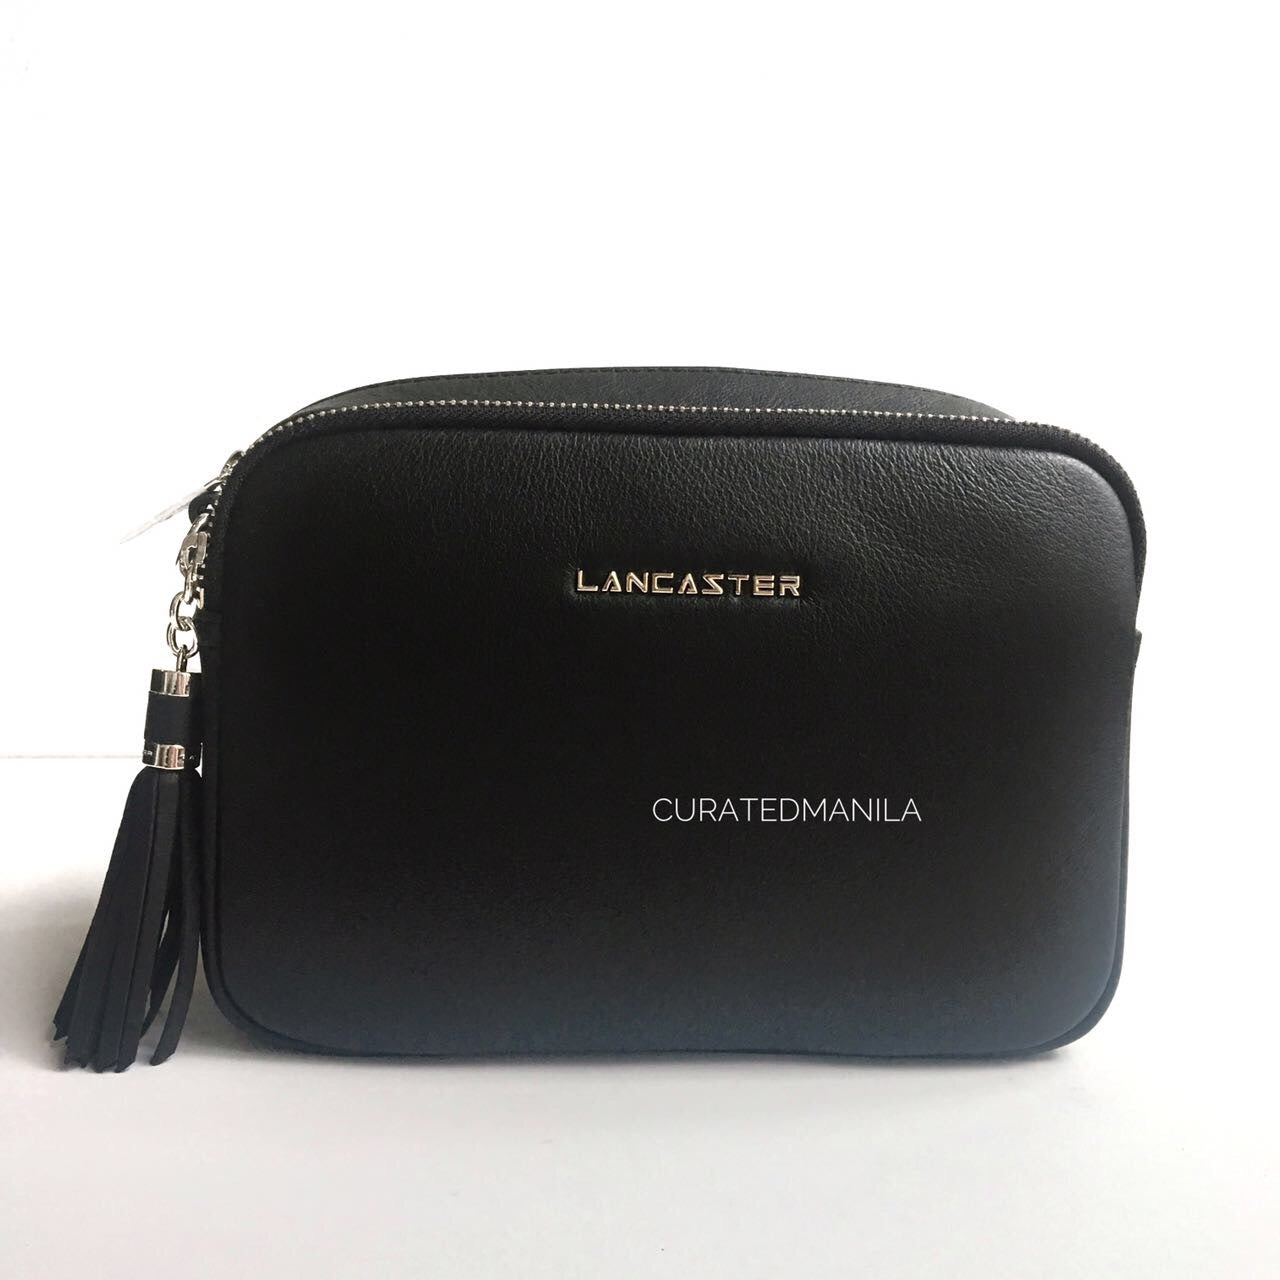 Lancaster Small Tassel Leather Shoulder Bag